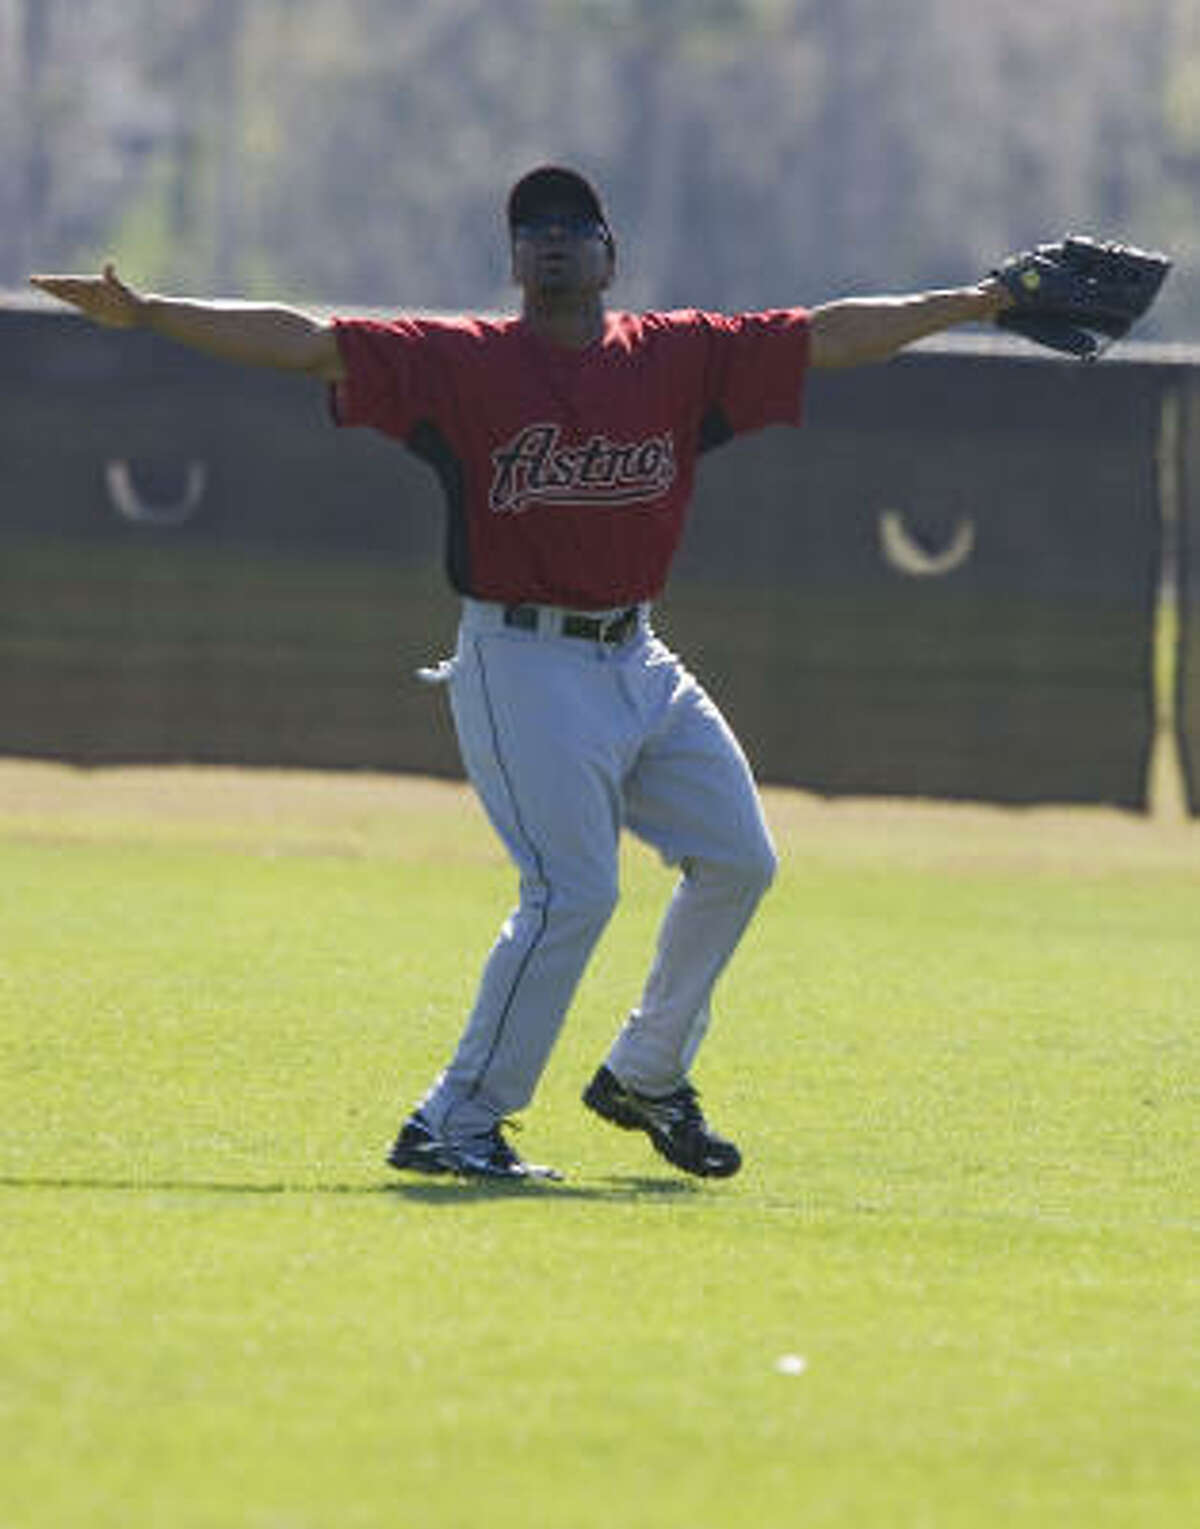 Outfielder Michael Bourn calls for a ball.